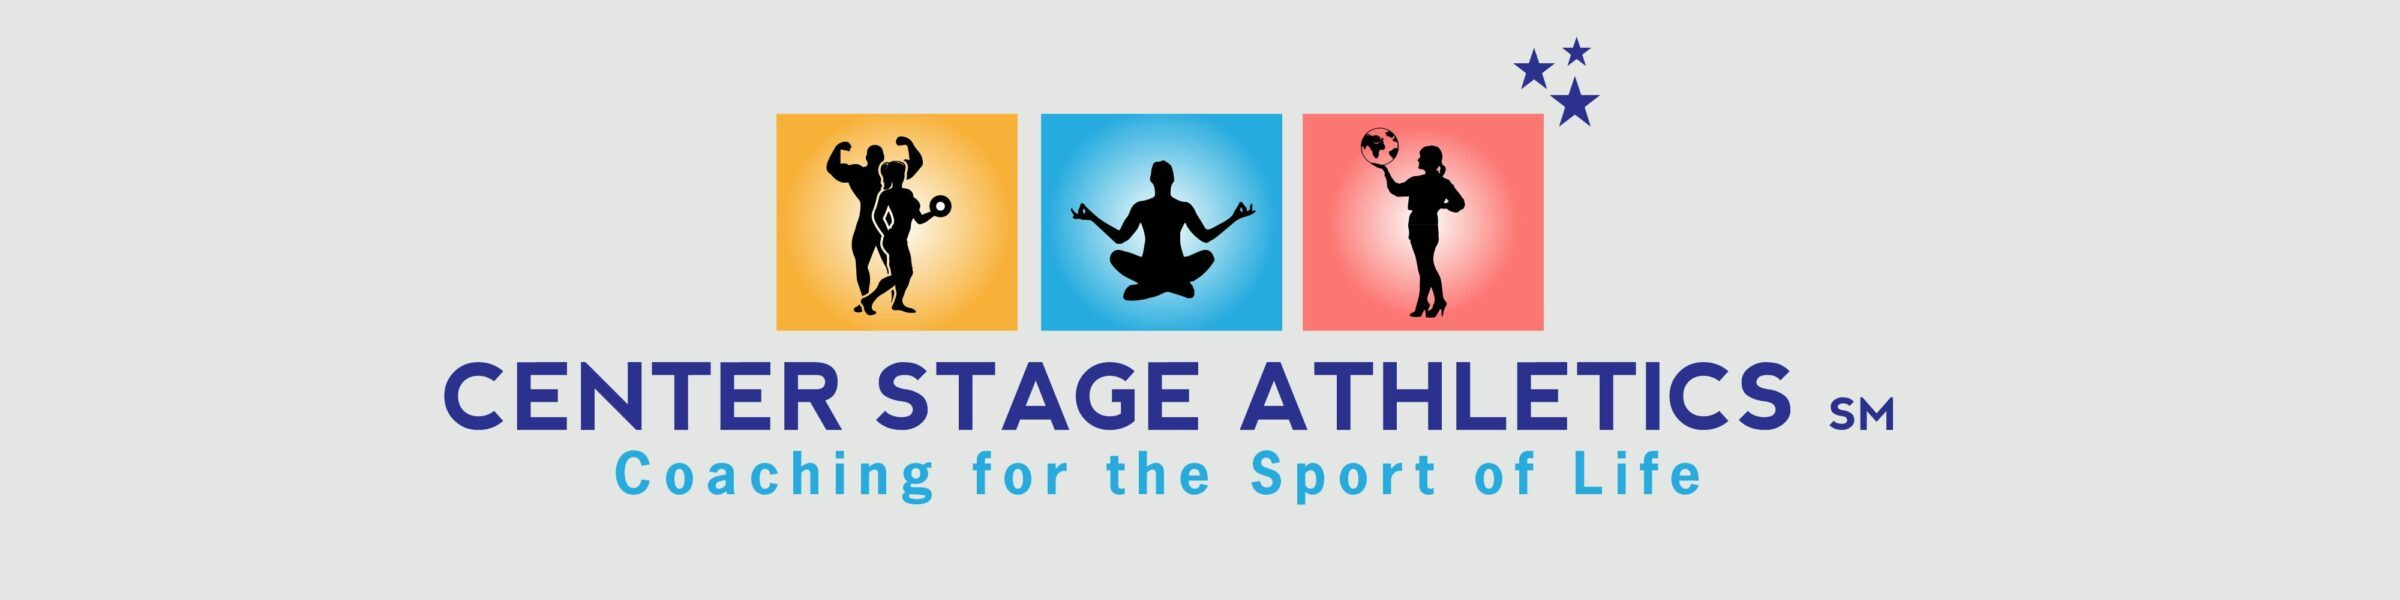 Center Stage Athletics & Team CSFP